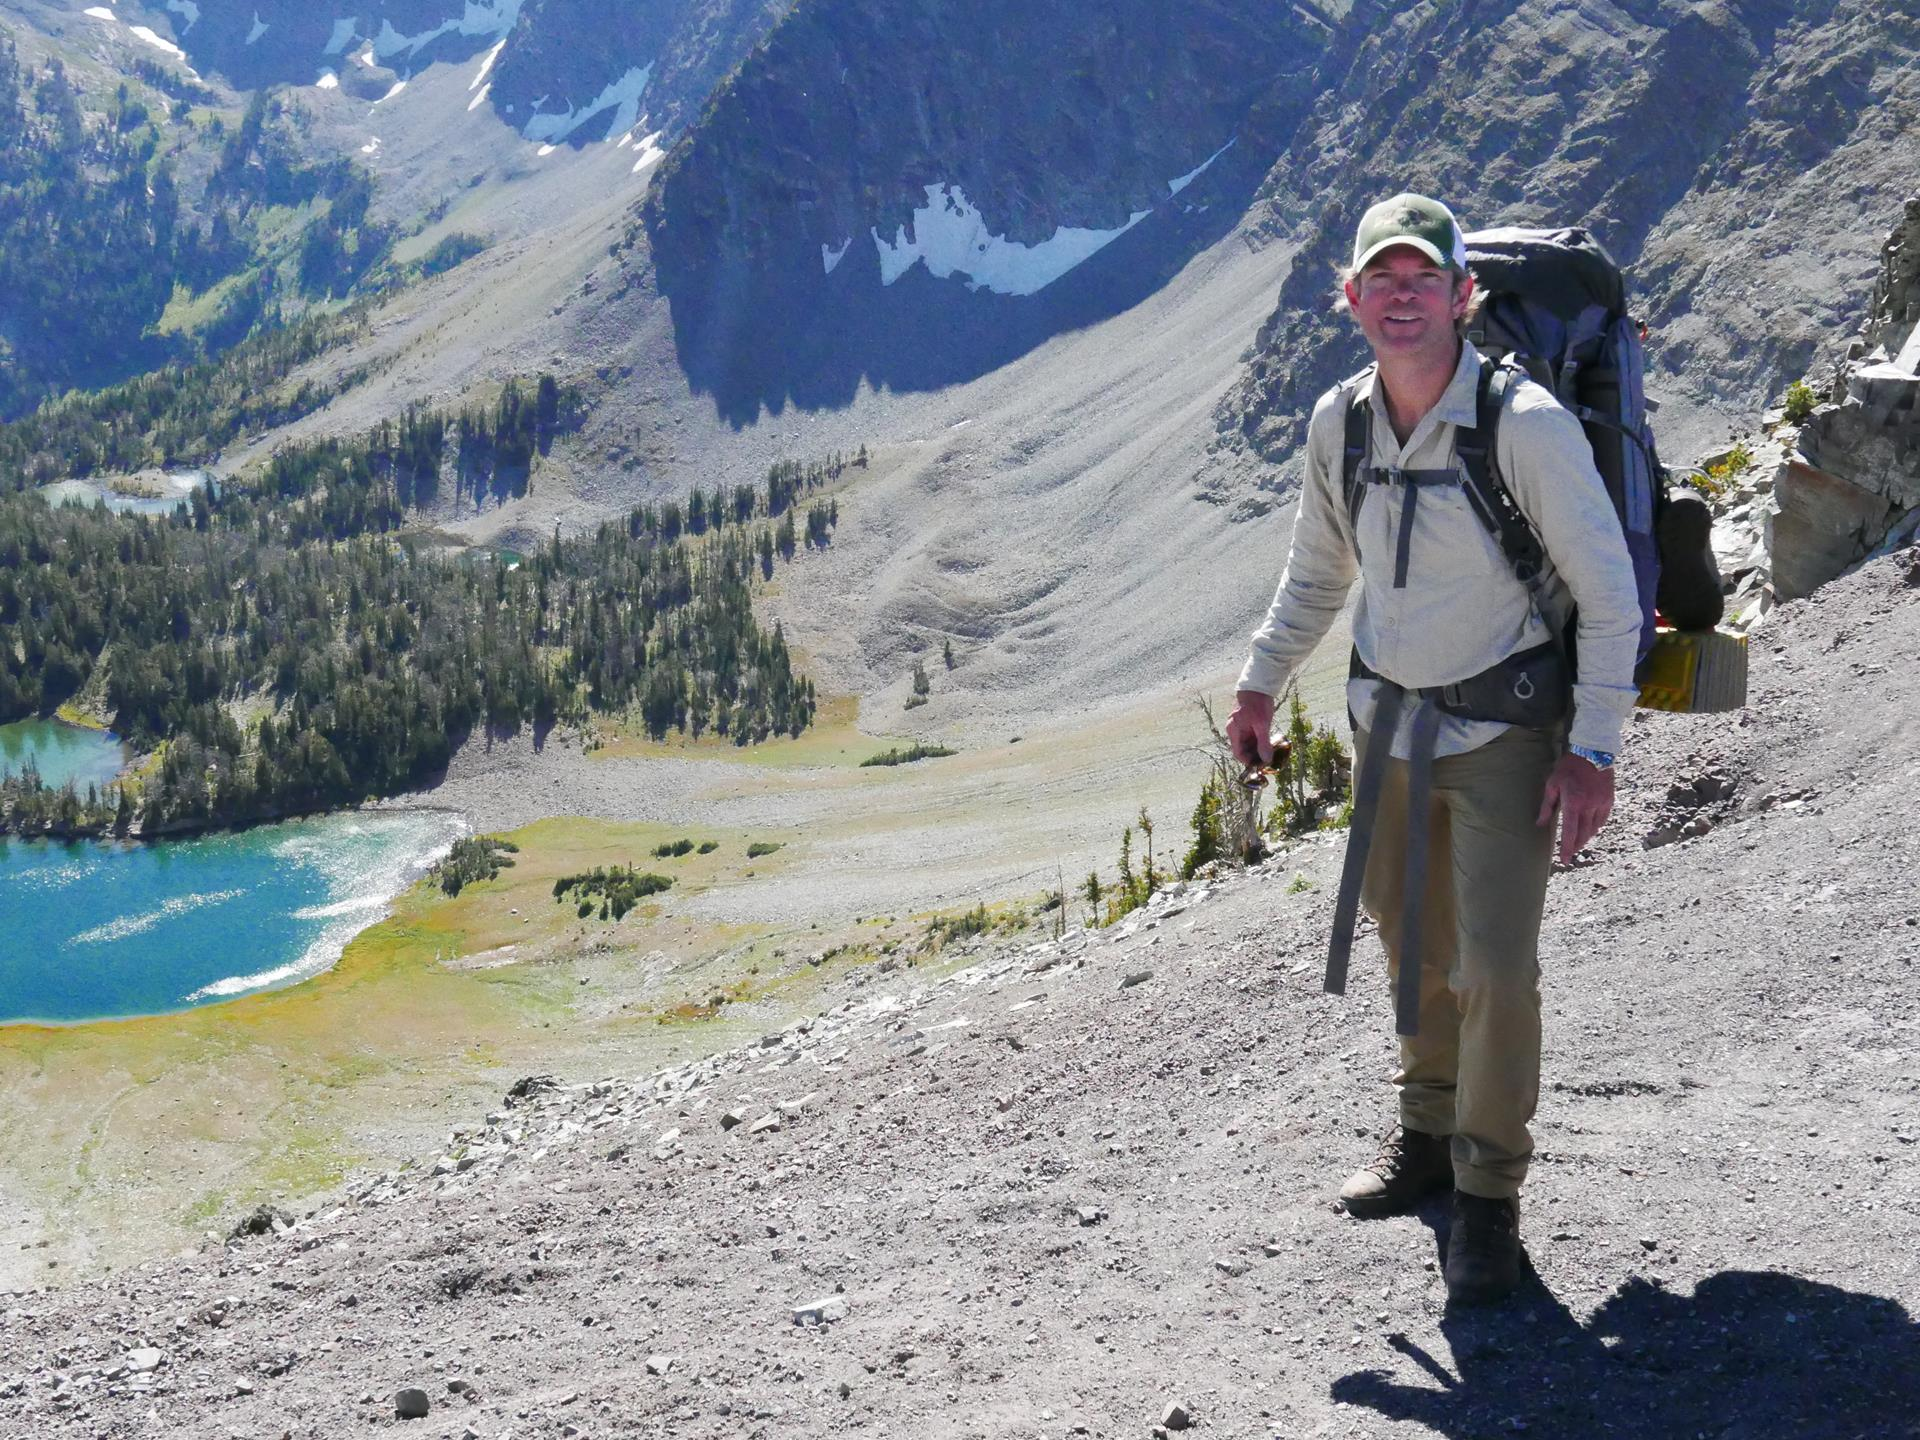 Hiking in my favorite range - The Crazy Mountains